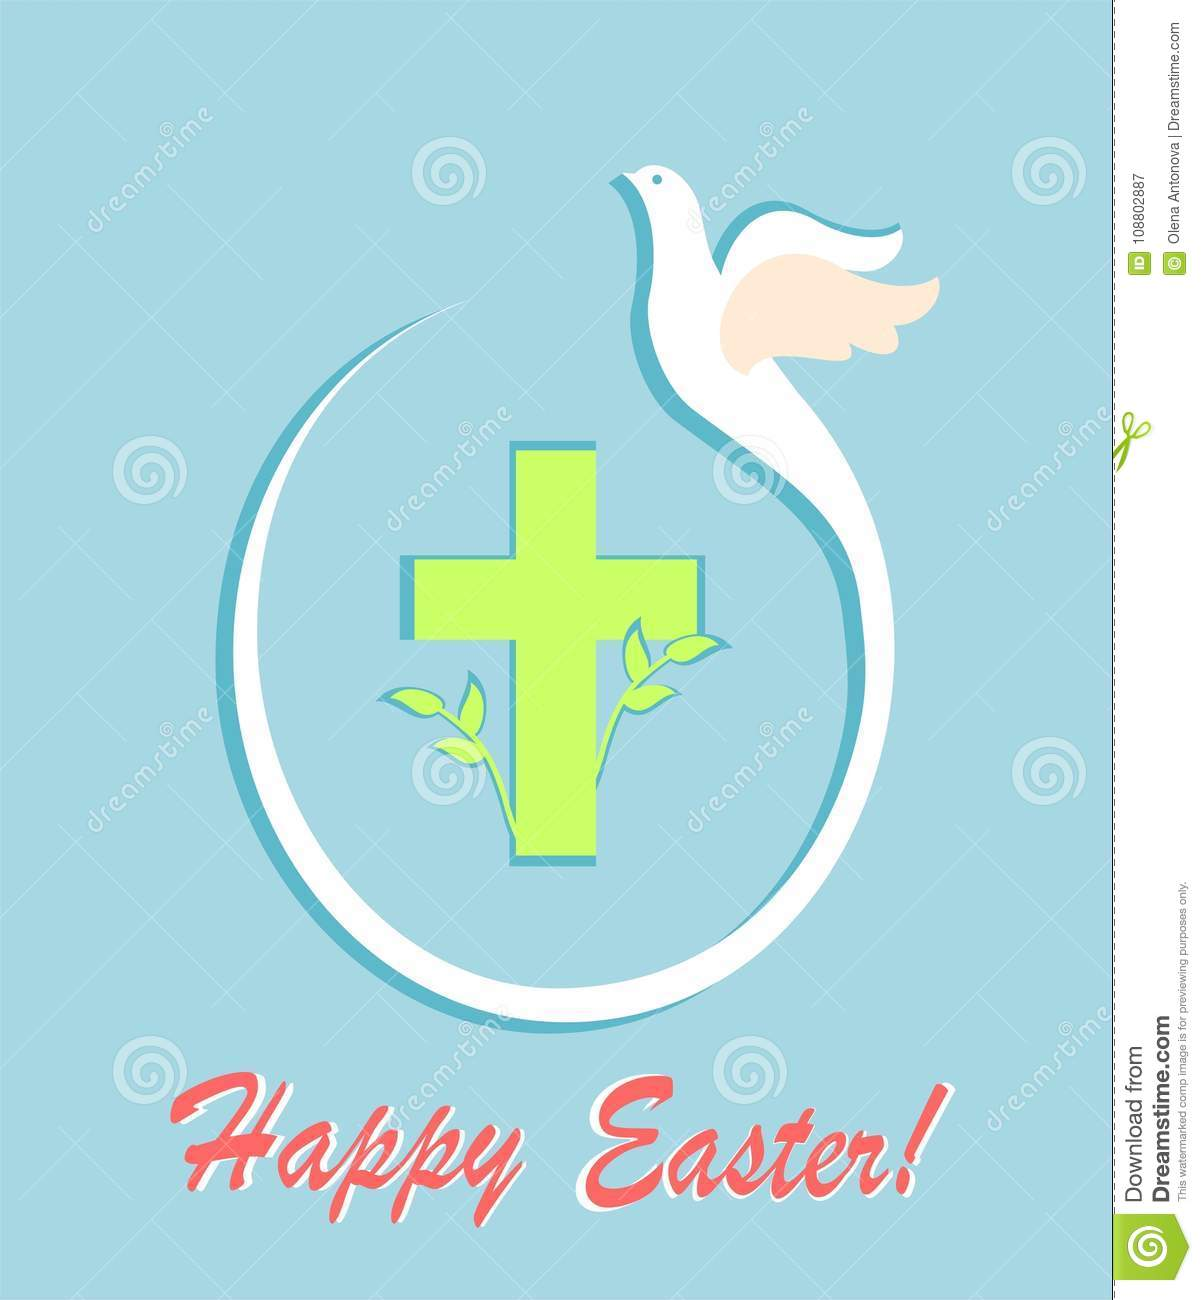 Greeting easter pastel card with cut out paper flying dove egg greeting easter pastel card with cut out paper flying dove egg shape and cross m4hsunfo